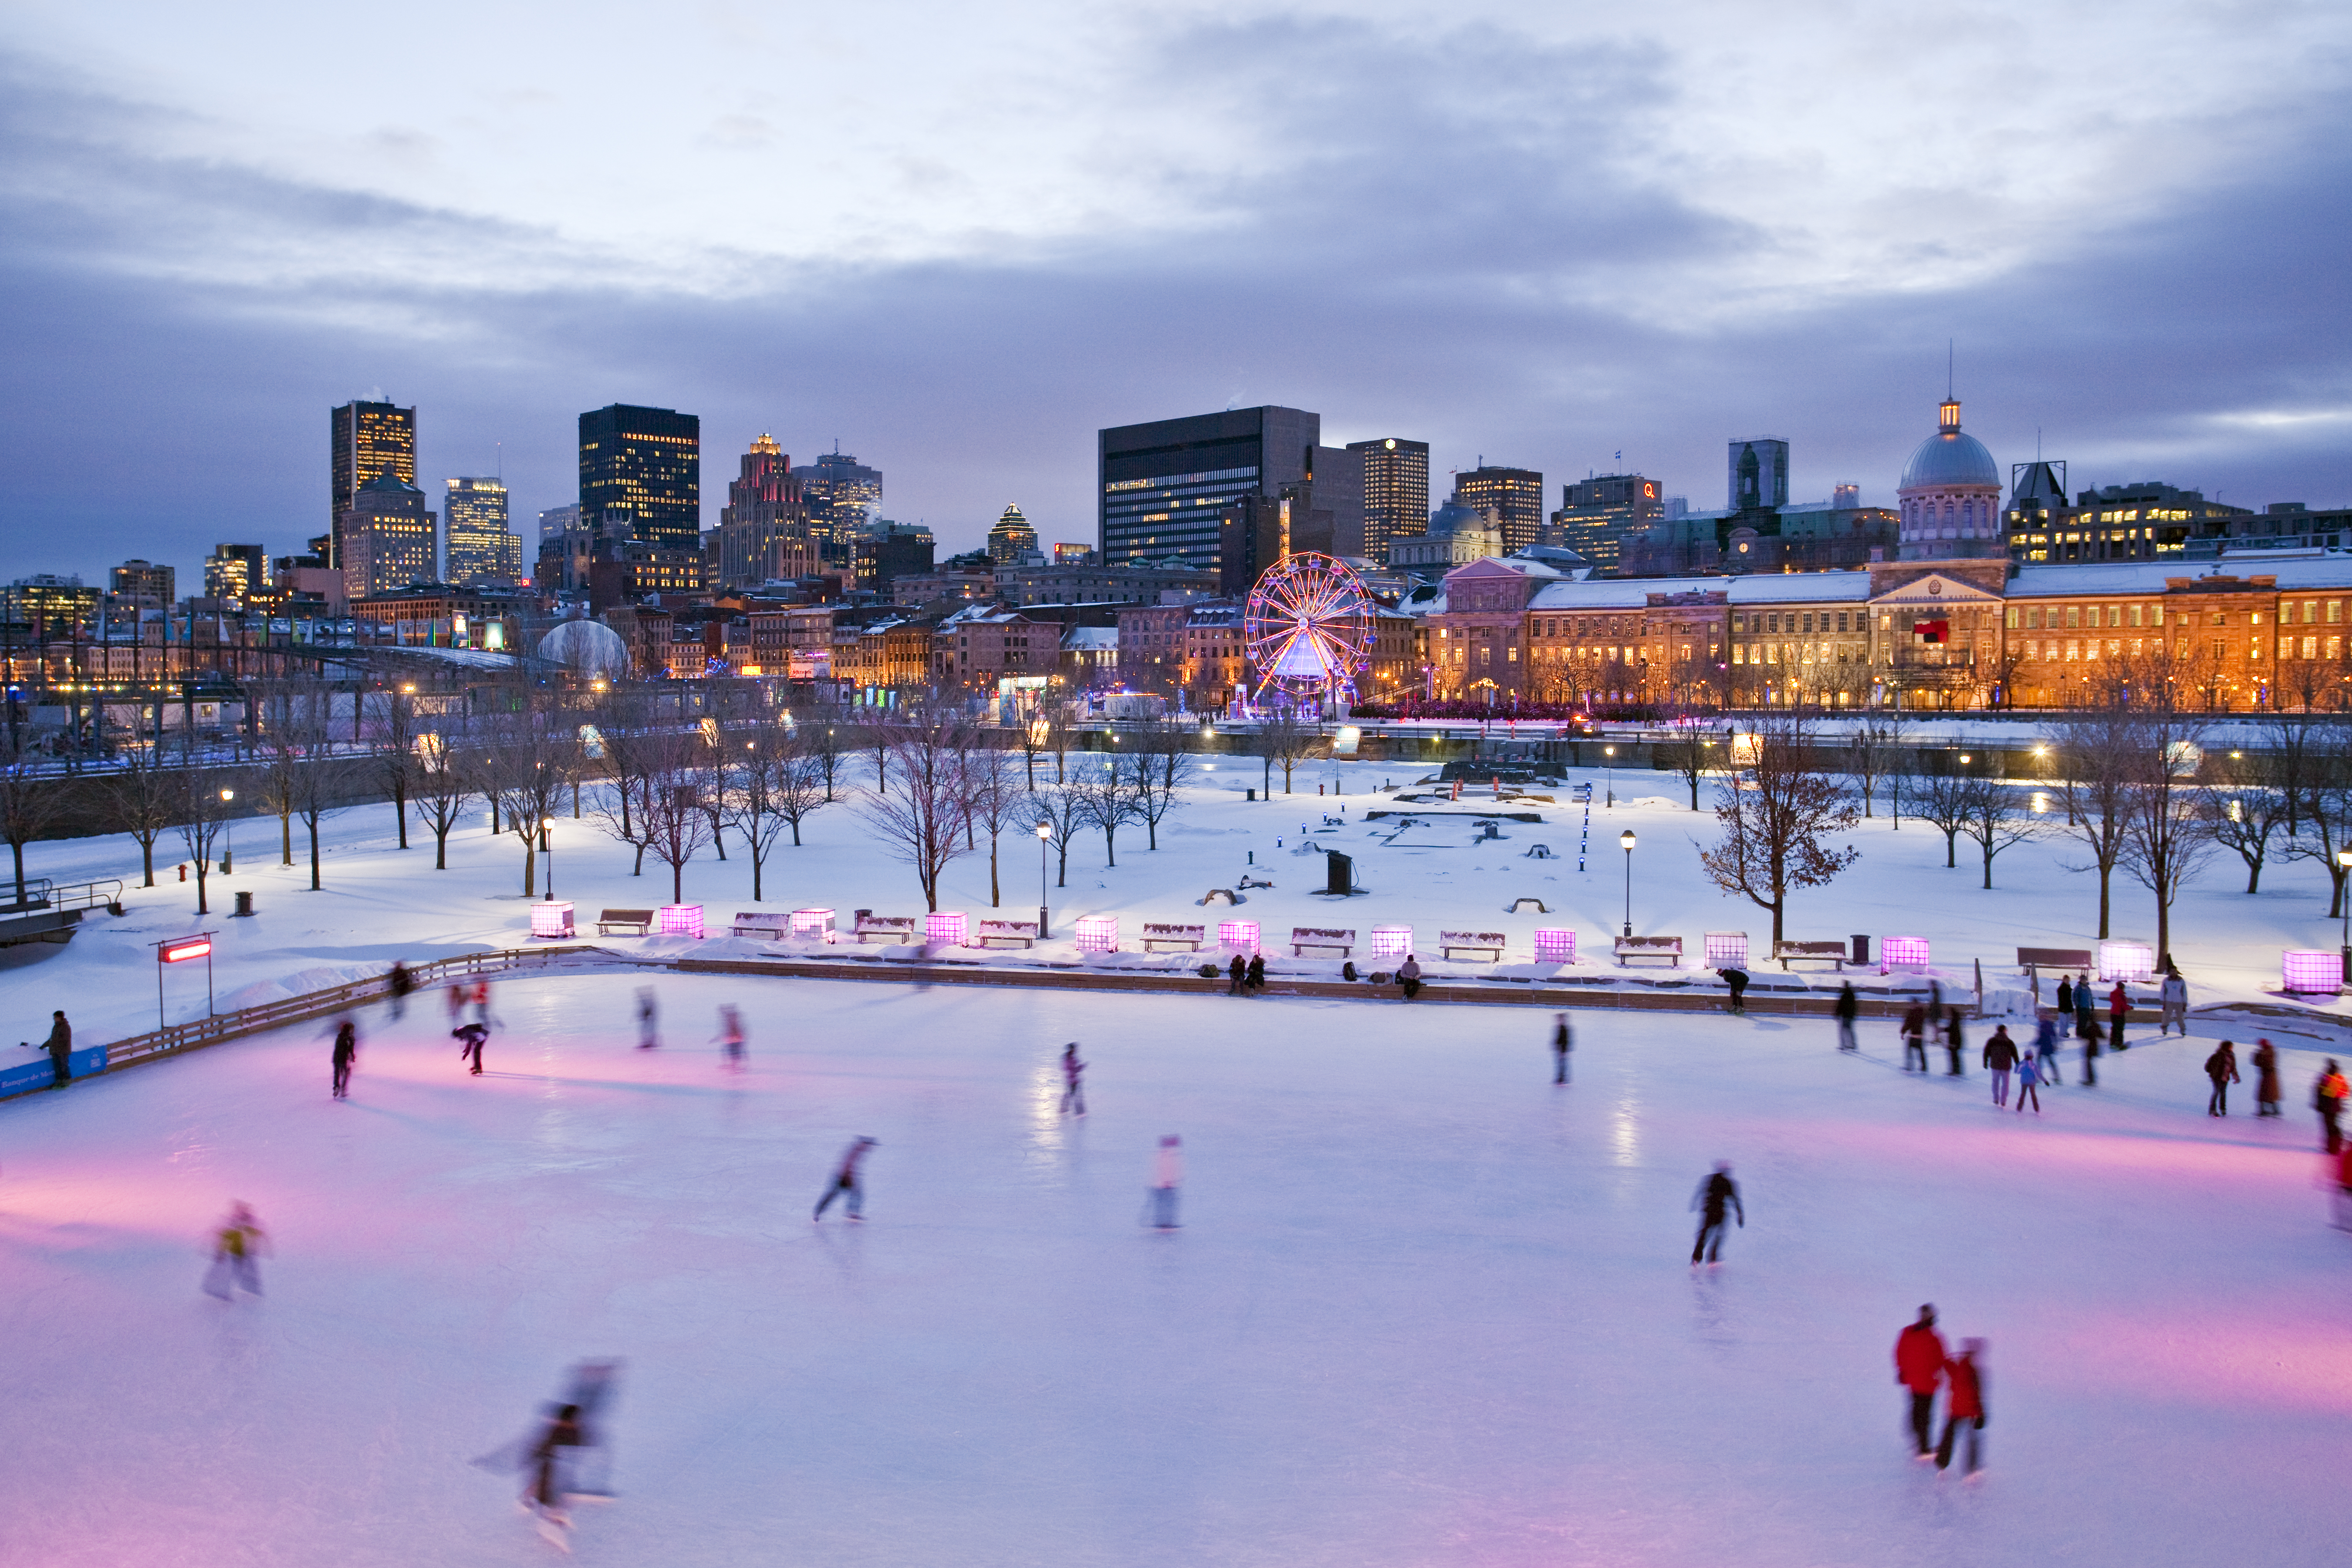 lace up your skates the top 10 ice rinks in canada